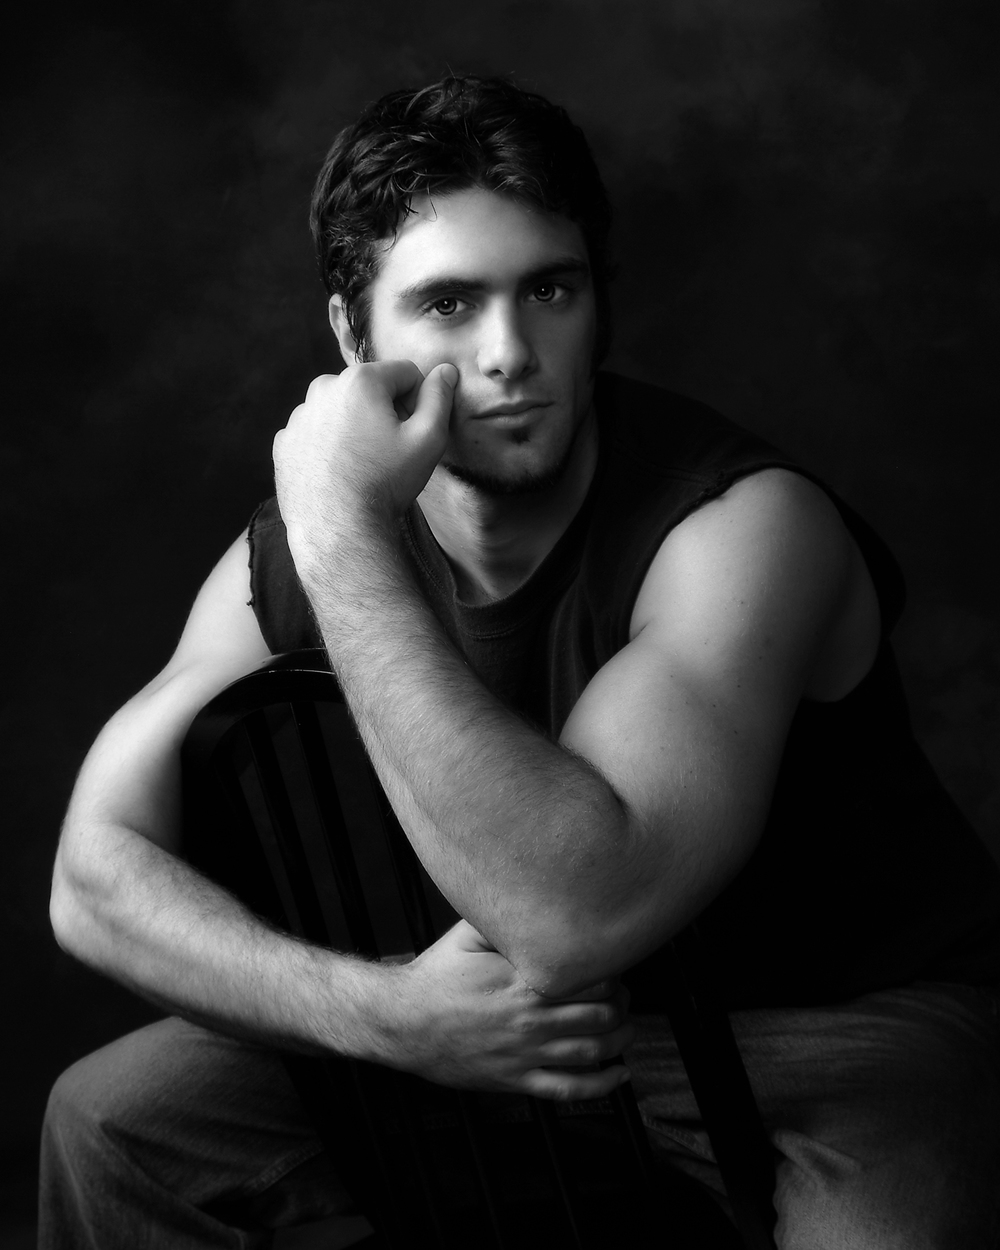 Rick-Ferro-Studio-Male-Portrait.jpg